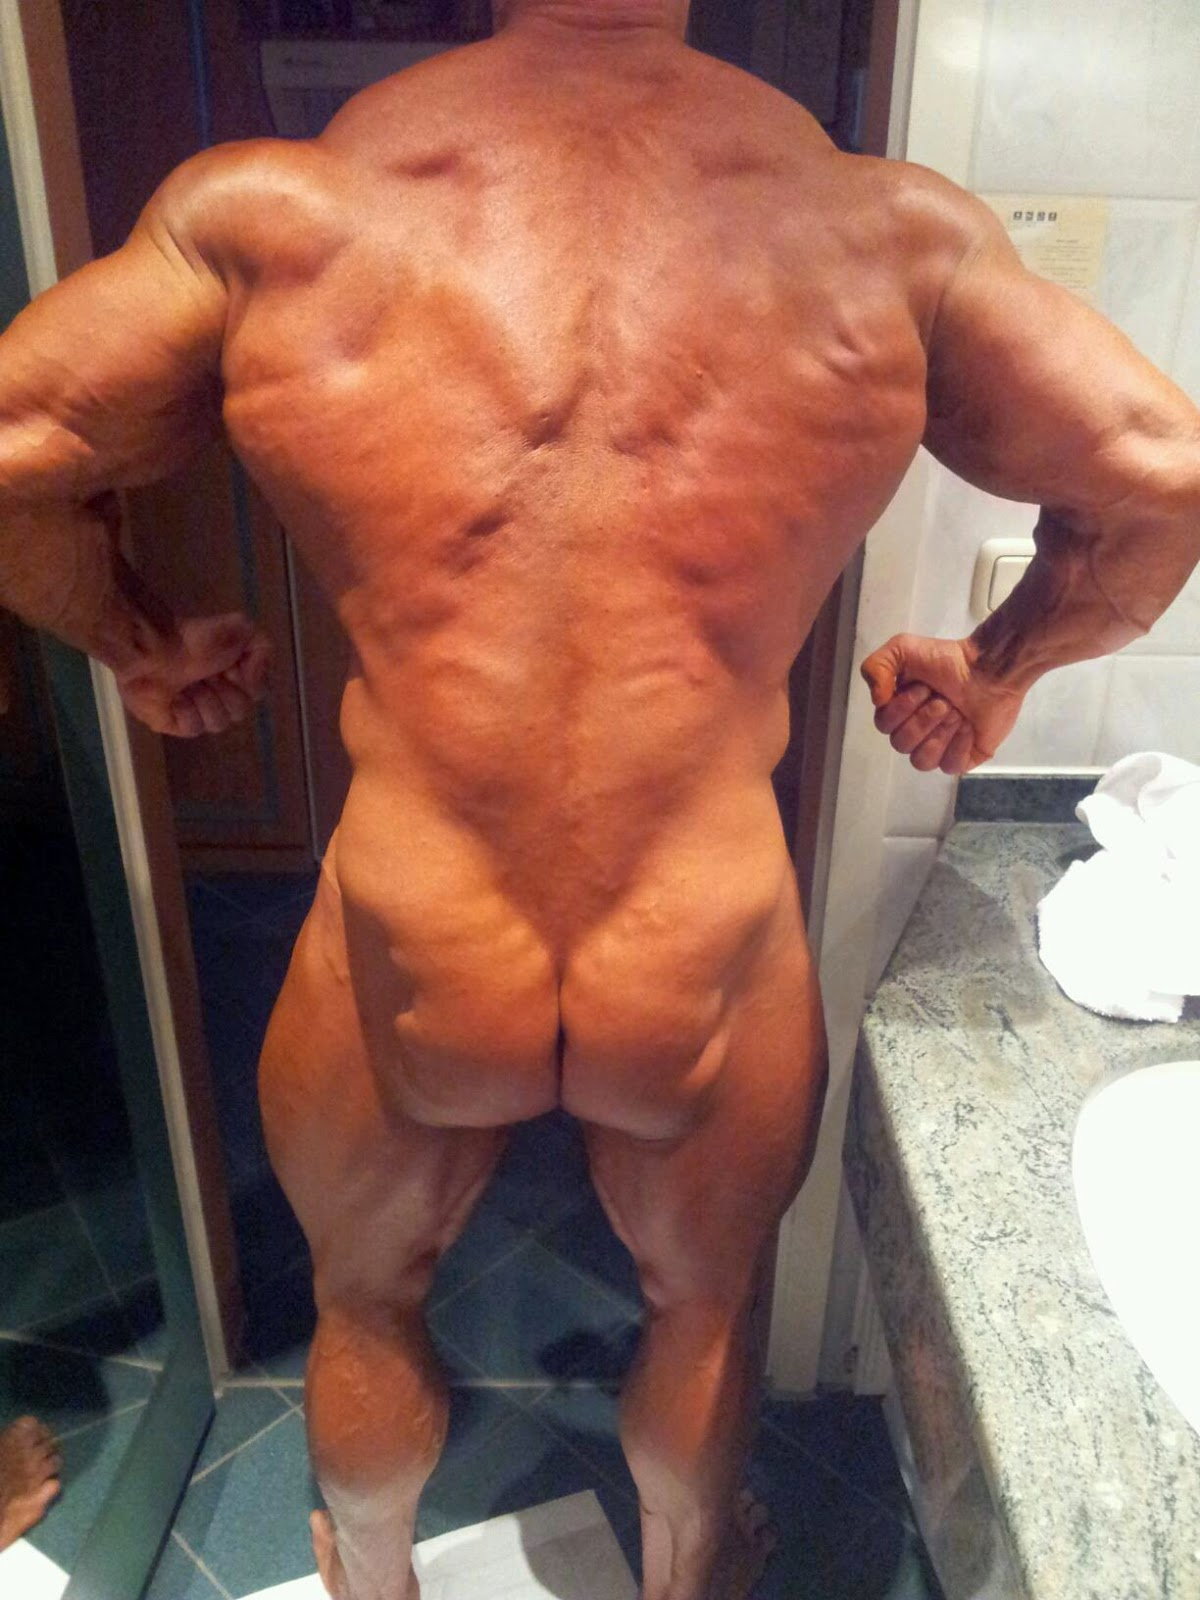 Male bodybuilder naked ass butt wir